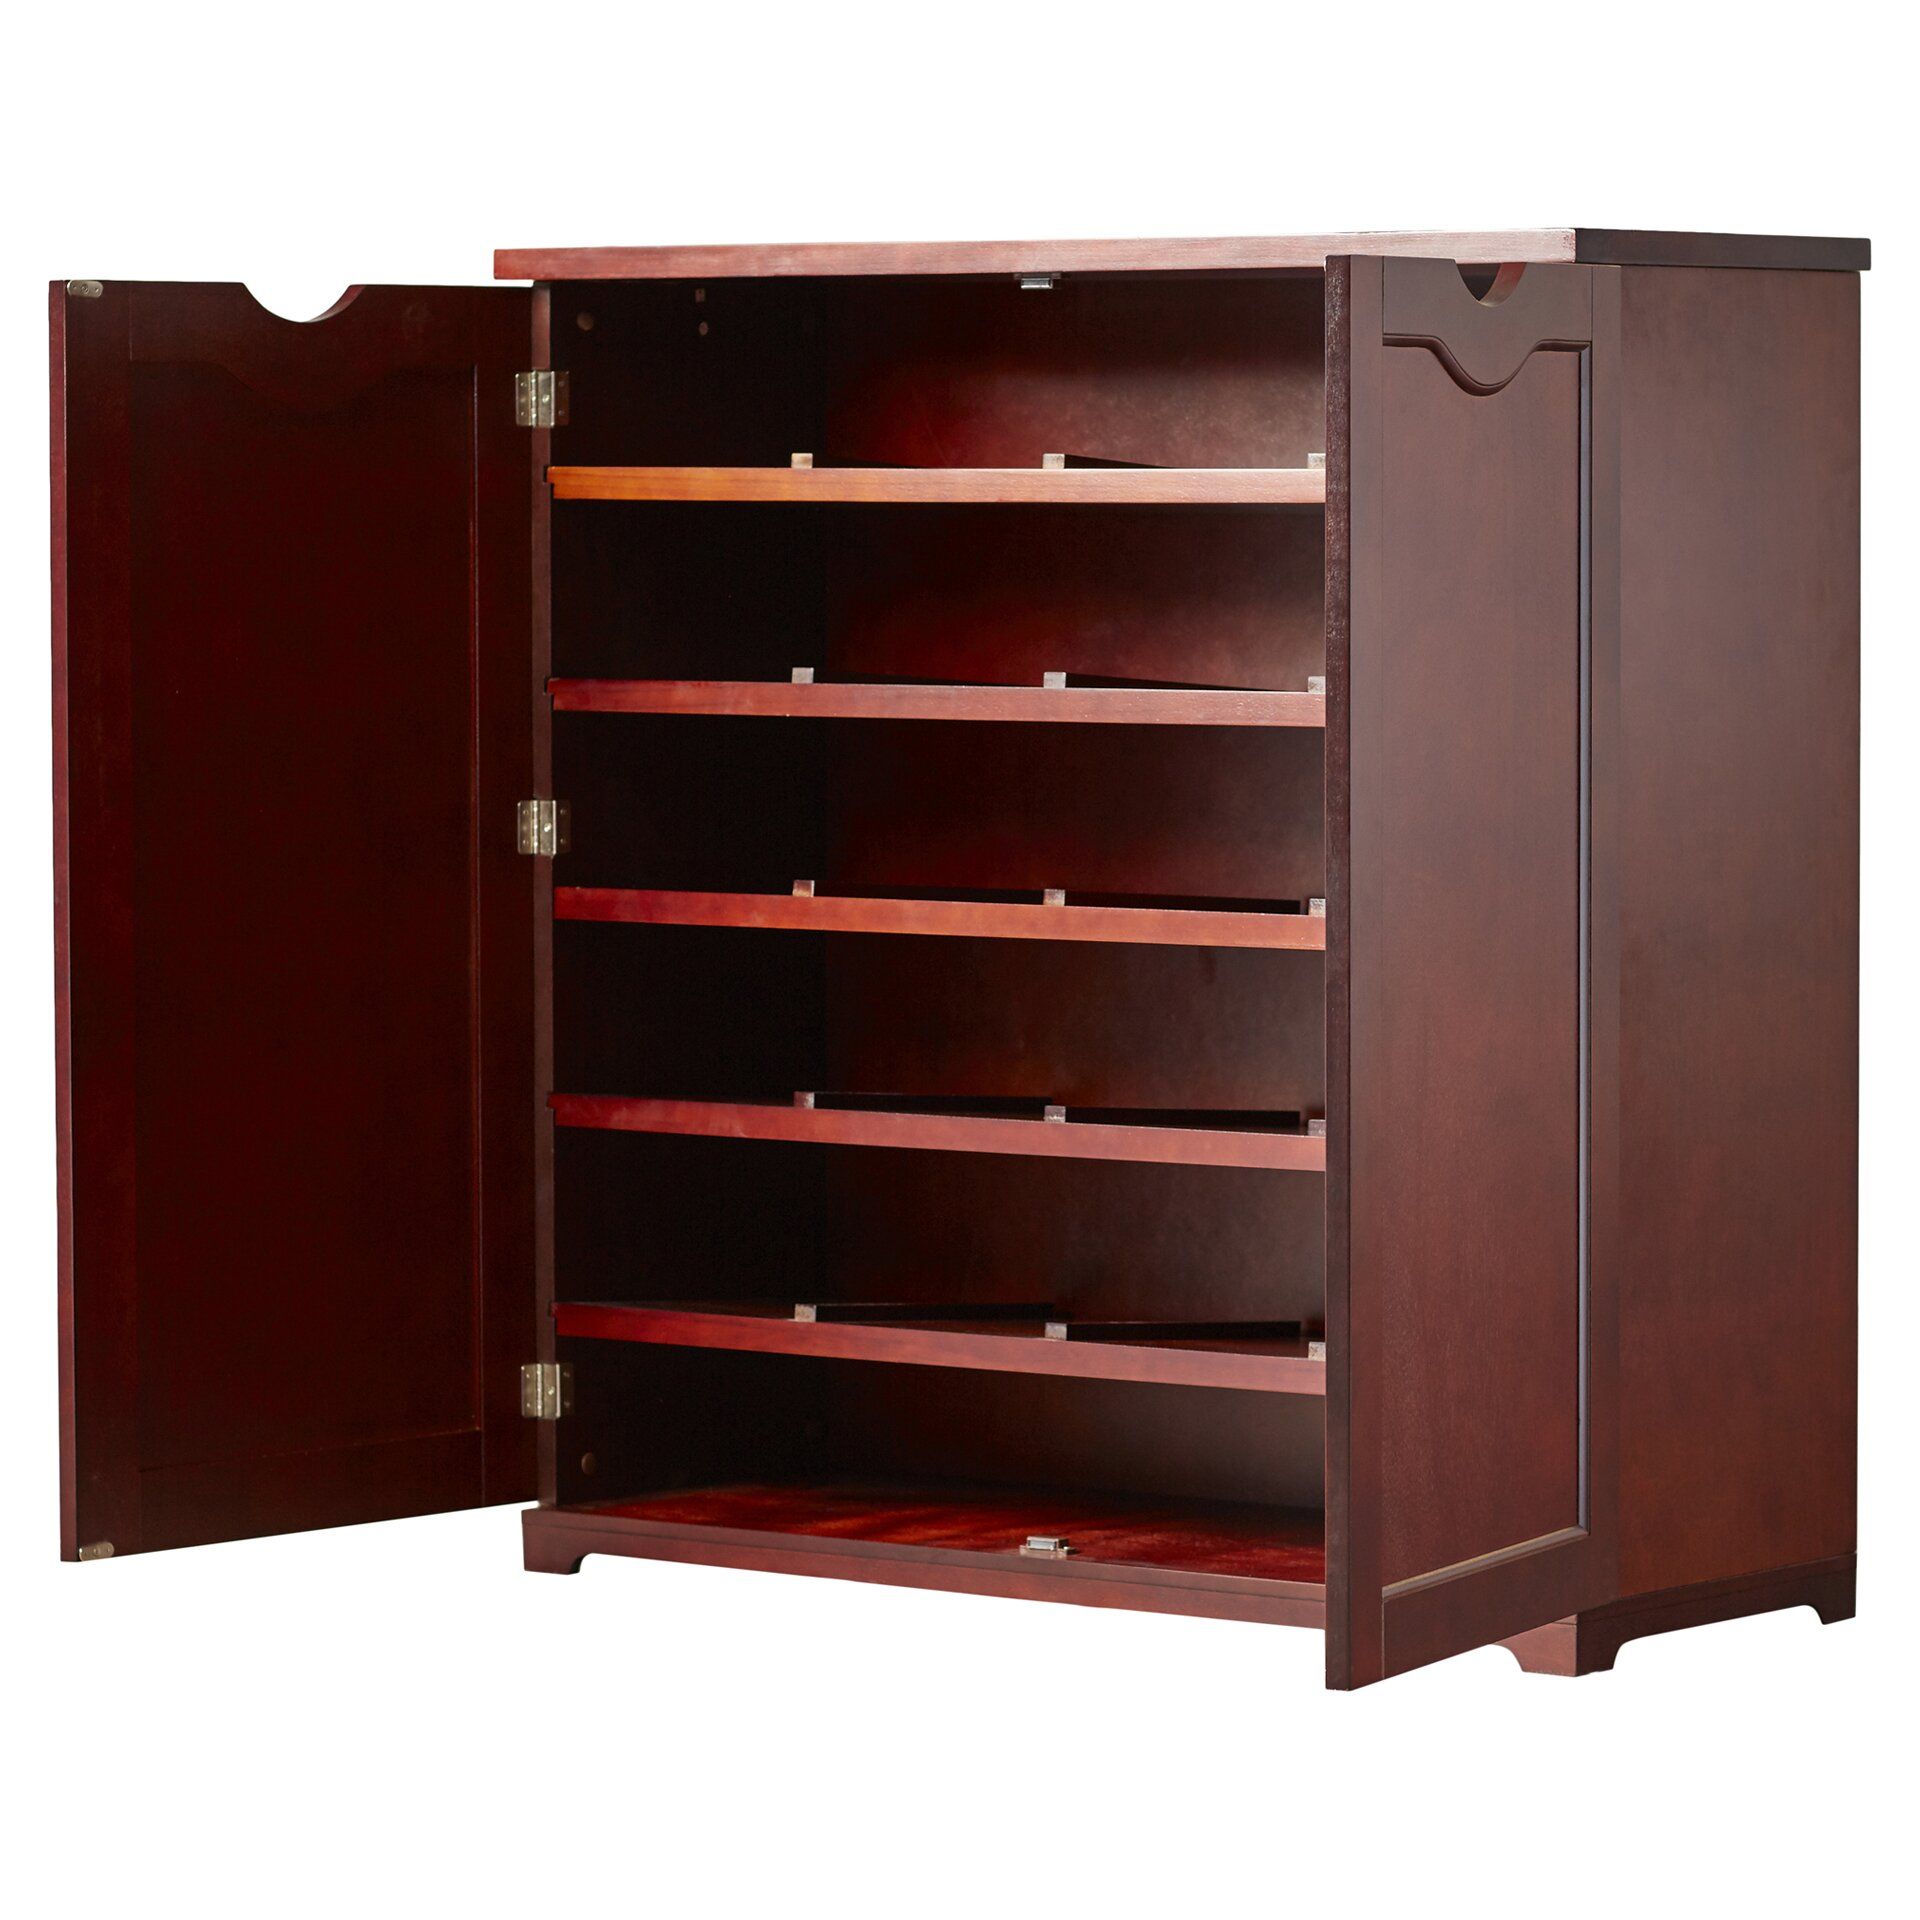 a pair of shoe ★10 pair shoe rack closetmaid™ ^^ check price for 10 pair shoe rack closetmaid get it to day on-line looking has currently gone an extended means it's modified the way shoppers and entrepreneurs do business nowadays.